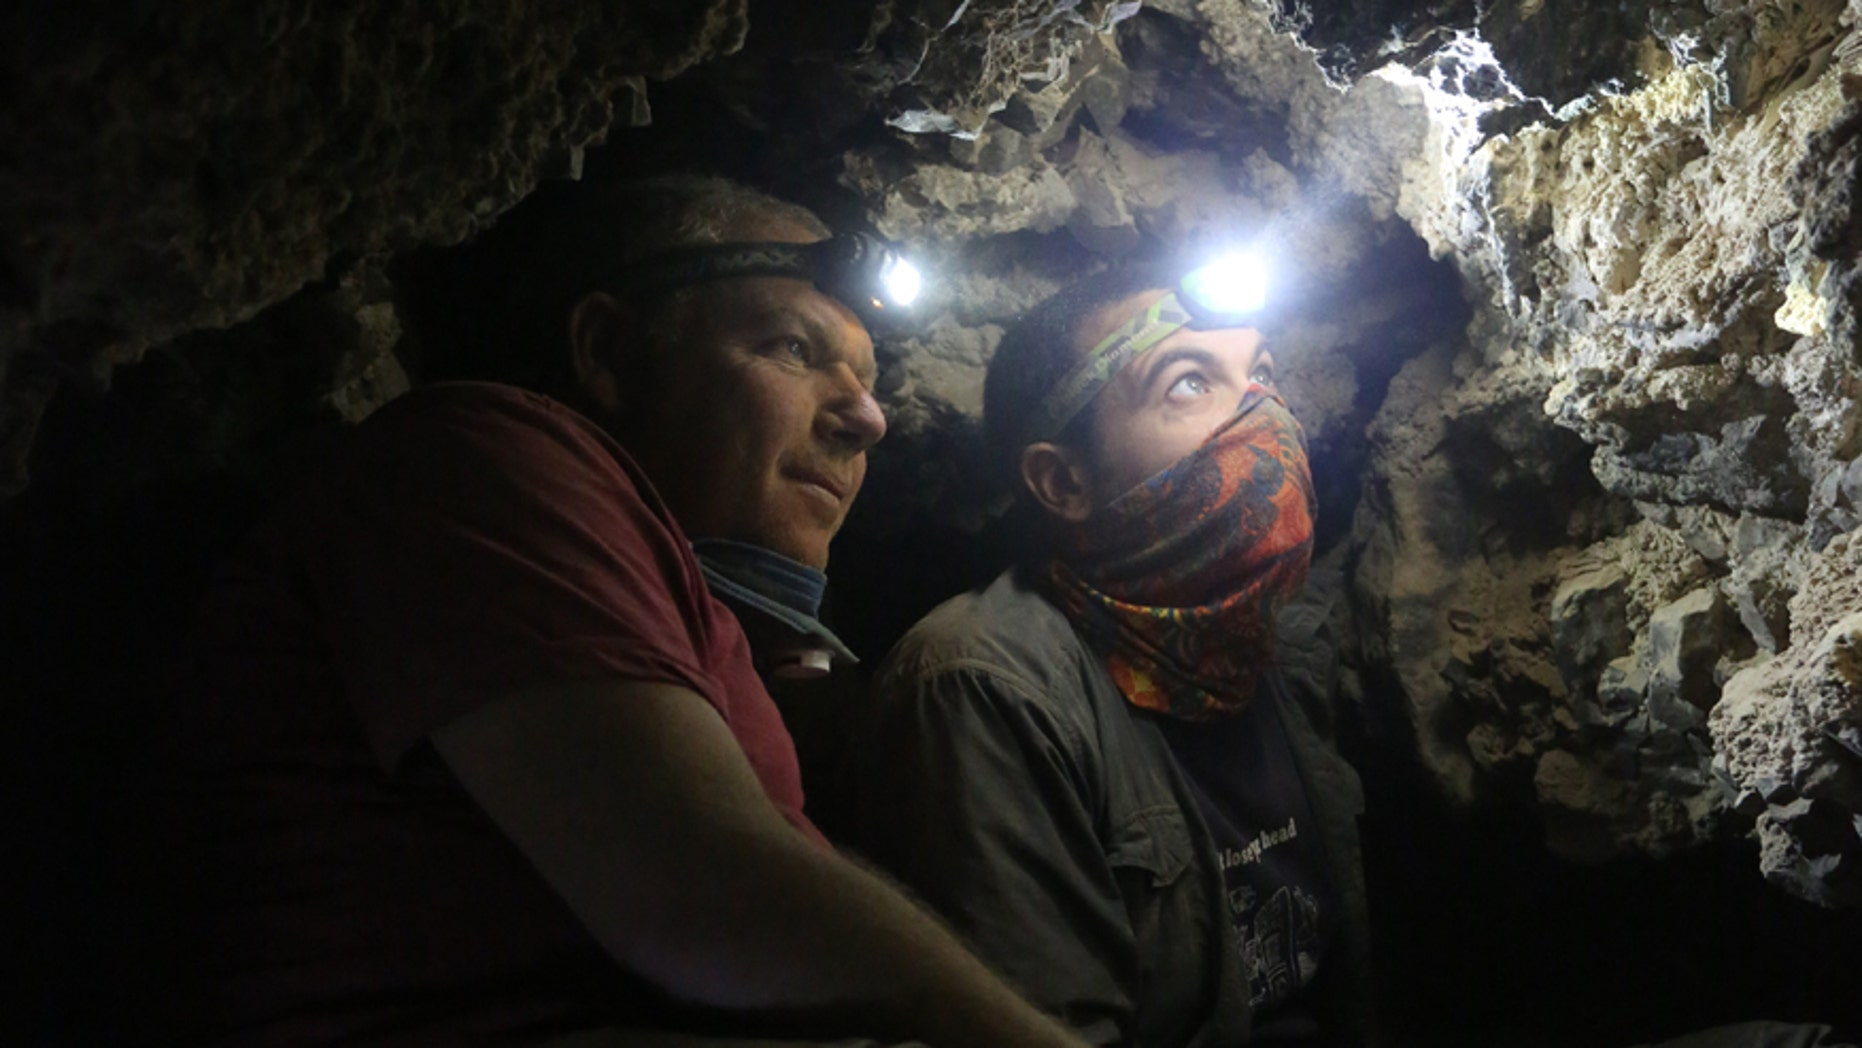 Archaeologists Oren Gutfeld & Ahiad Ovadia survey the cave.